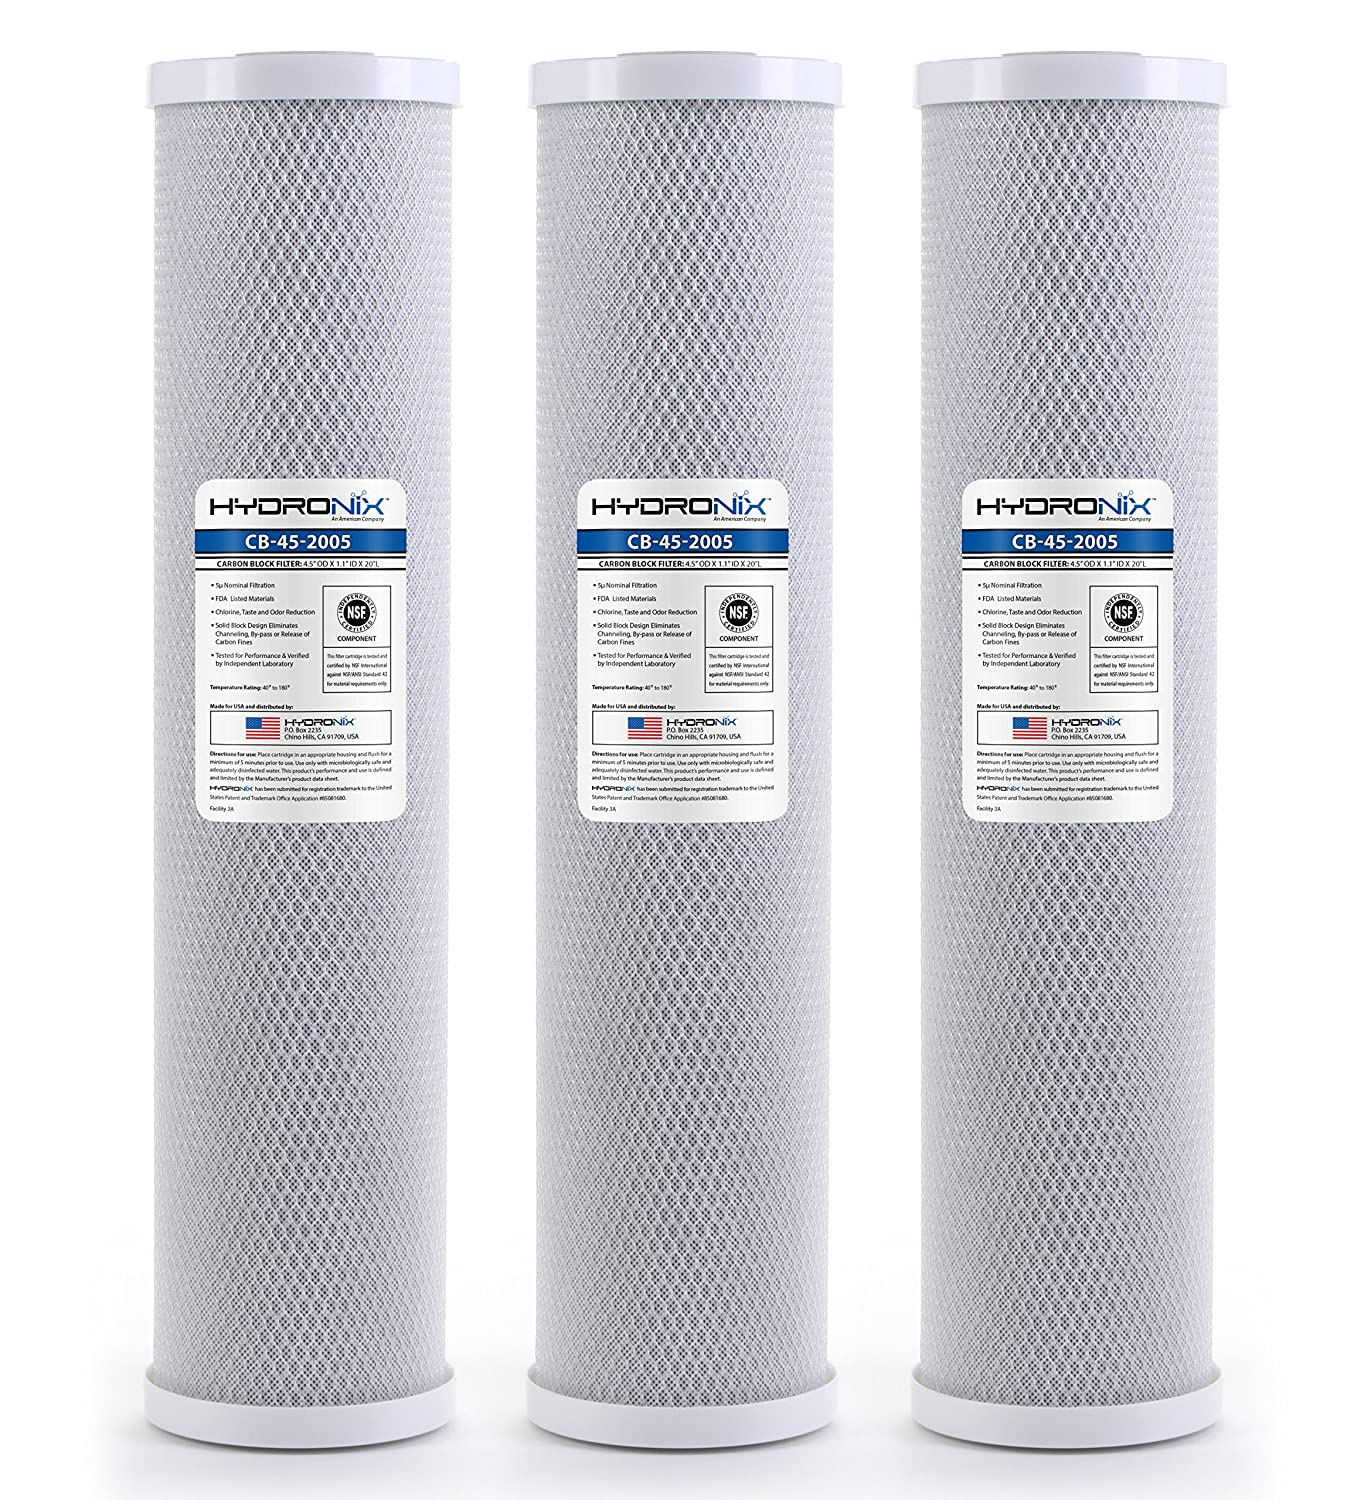 Hydronix HX CB 45 2005 3 Whole House Commercial Industrial Coconut Carbon Block Water Filter 4.5 x 20 5 Micron 3 Pack White